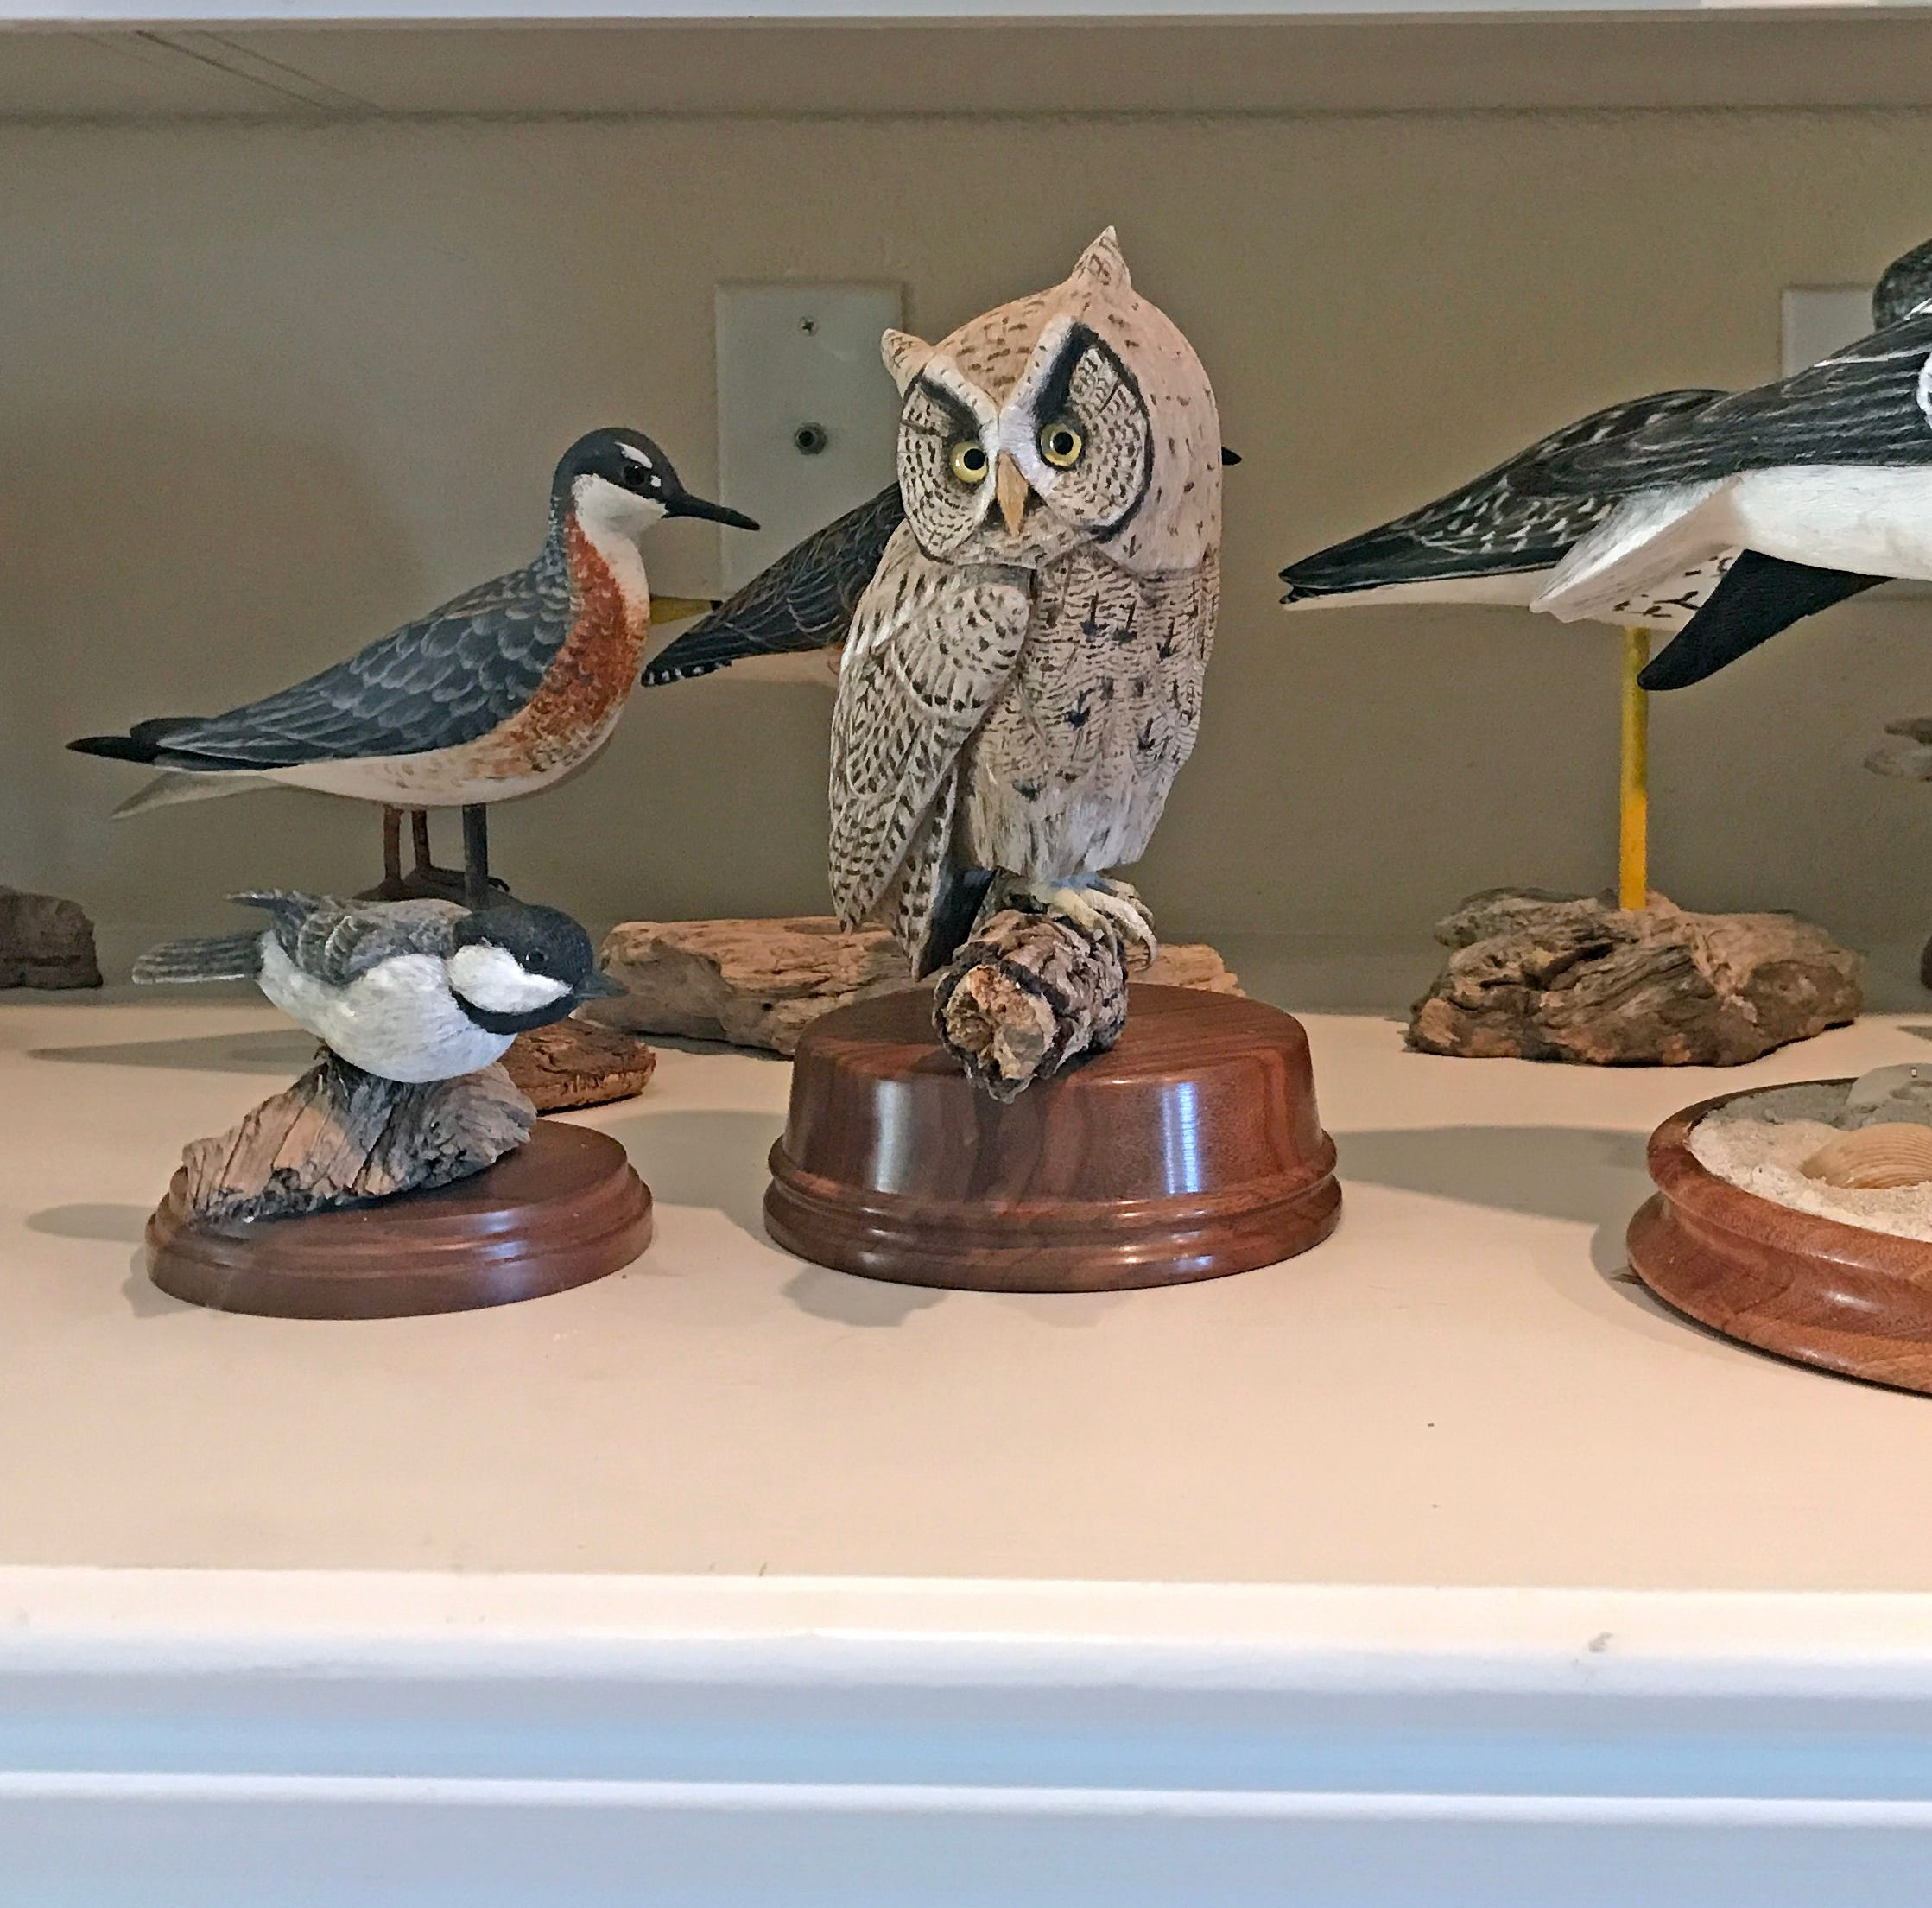 Corpus Christi wood carver brings birds to life with chisels, color, and care